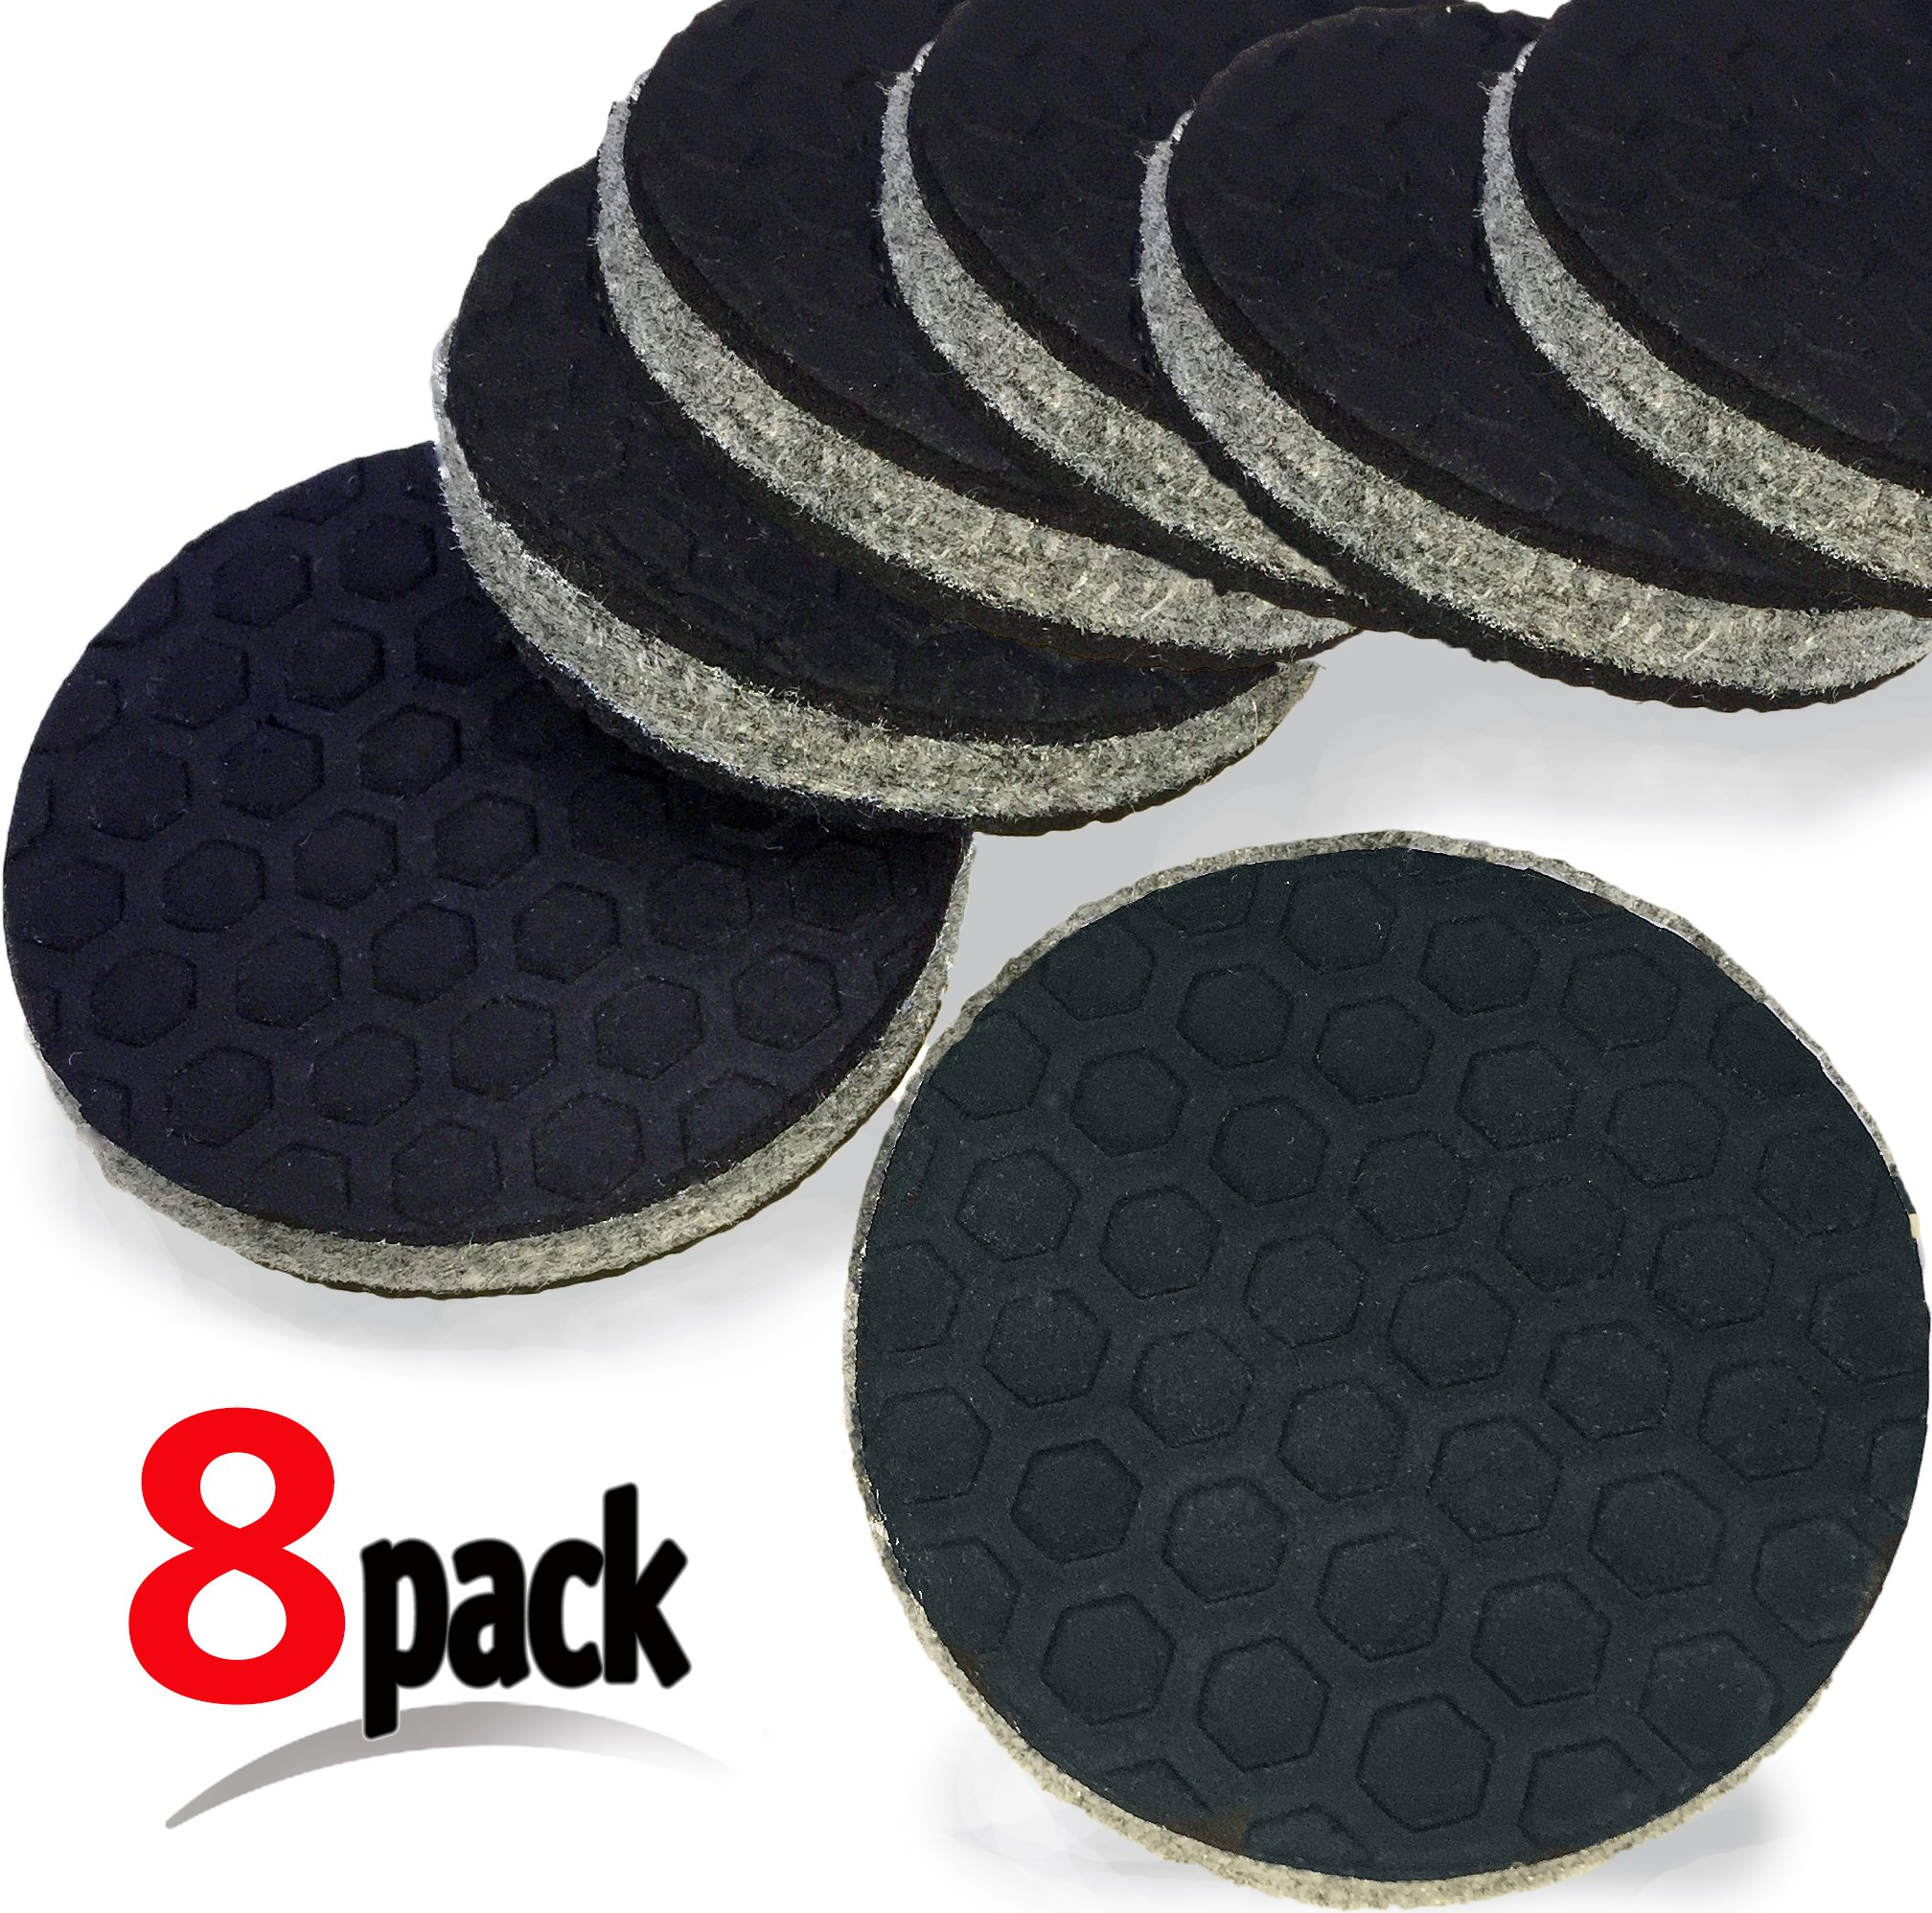 """""""SlipToGrip"""" 8 Pack Furniture Grippers by iPrimio - Furniture Non-Slip Pads 2"""" Round with 3/8"""" Heavy Duty Felt Core. No Adhesive. No Nails. Won't Harm Floors."""